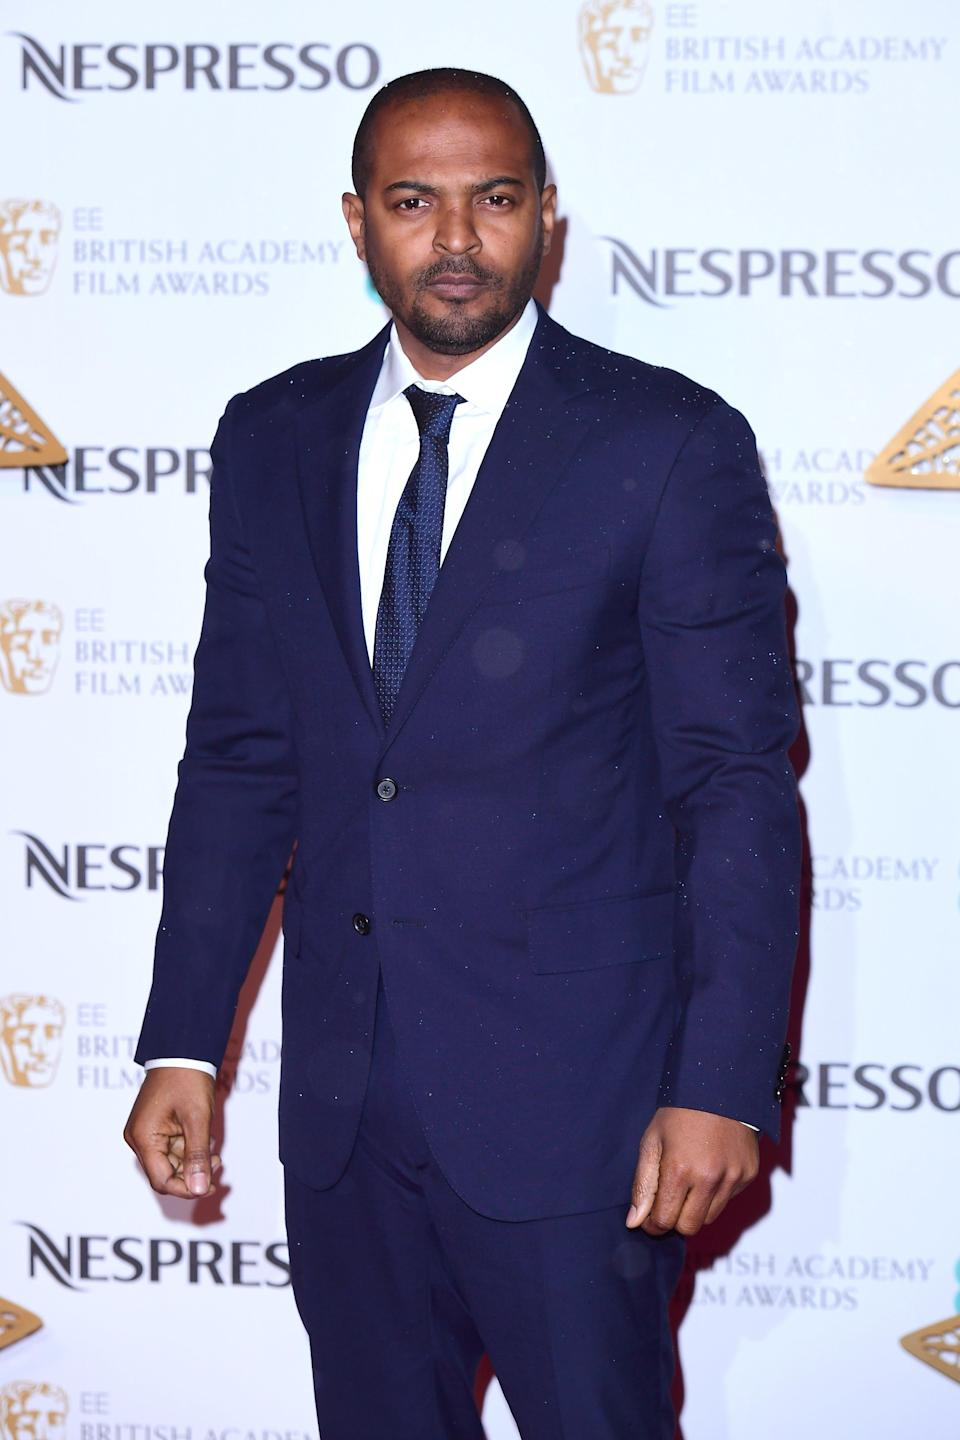 The Nespresso Nominees Party for the BAFTA Film Awards Arrivals – LondonPA Archive